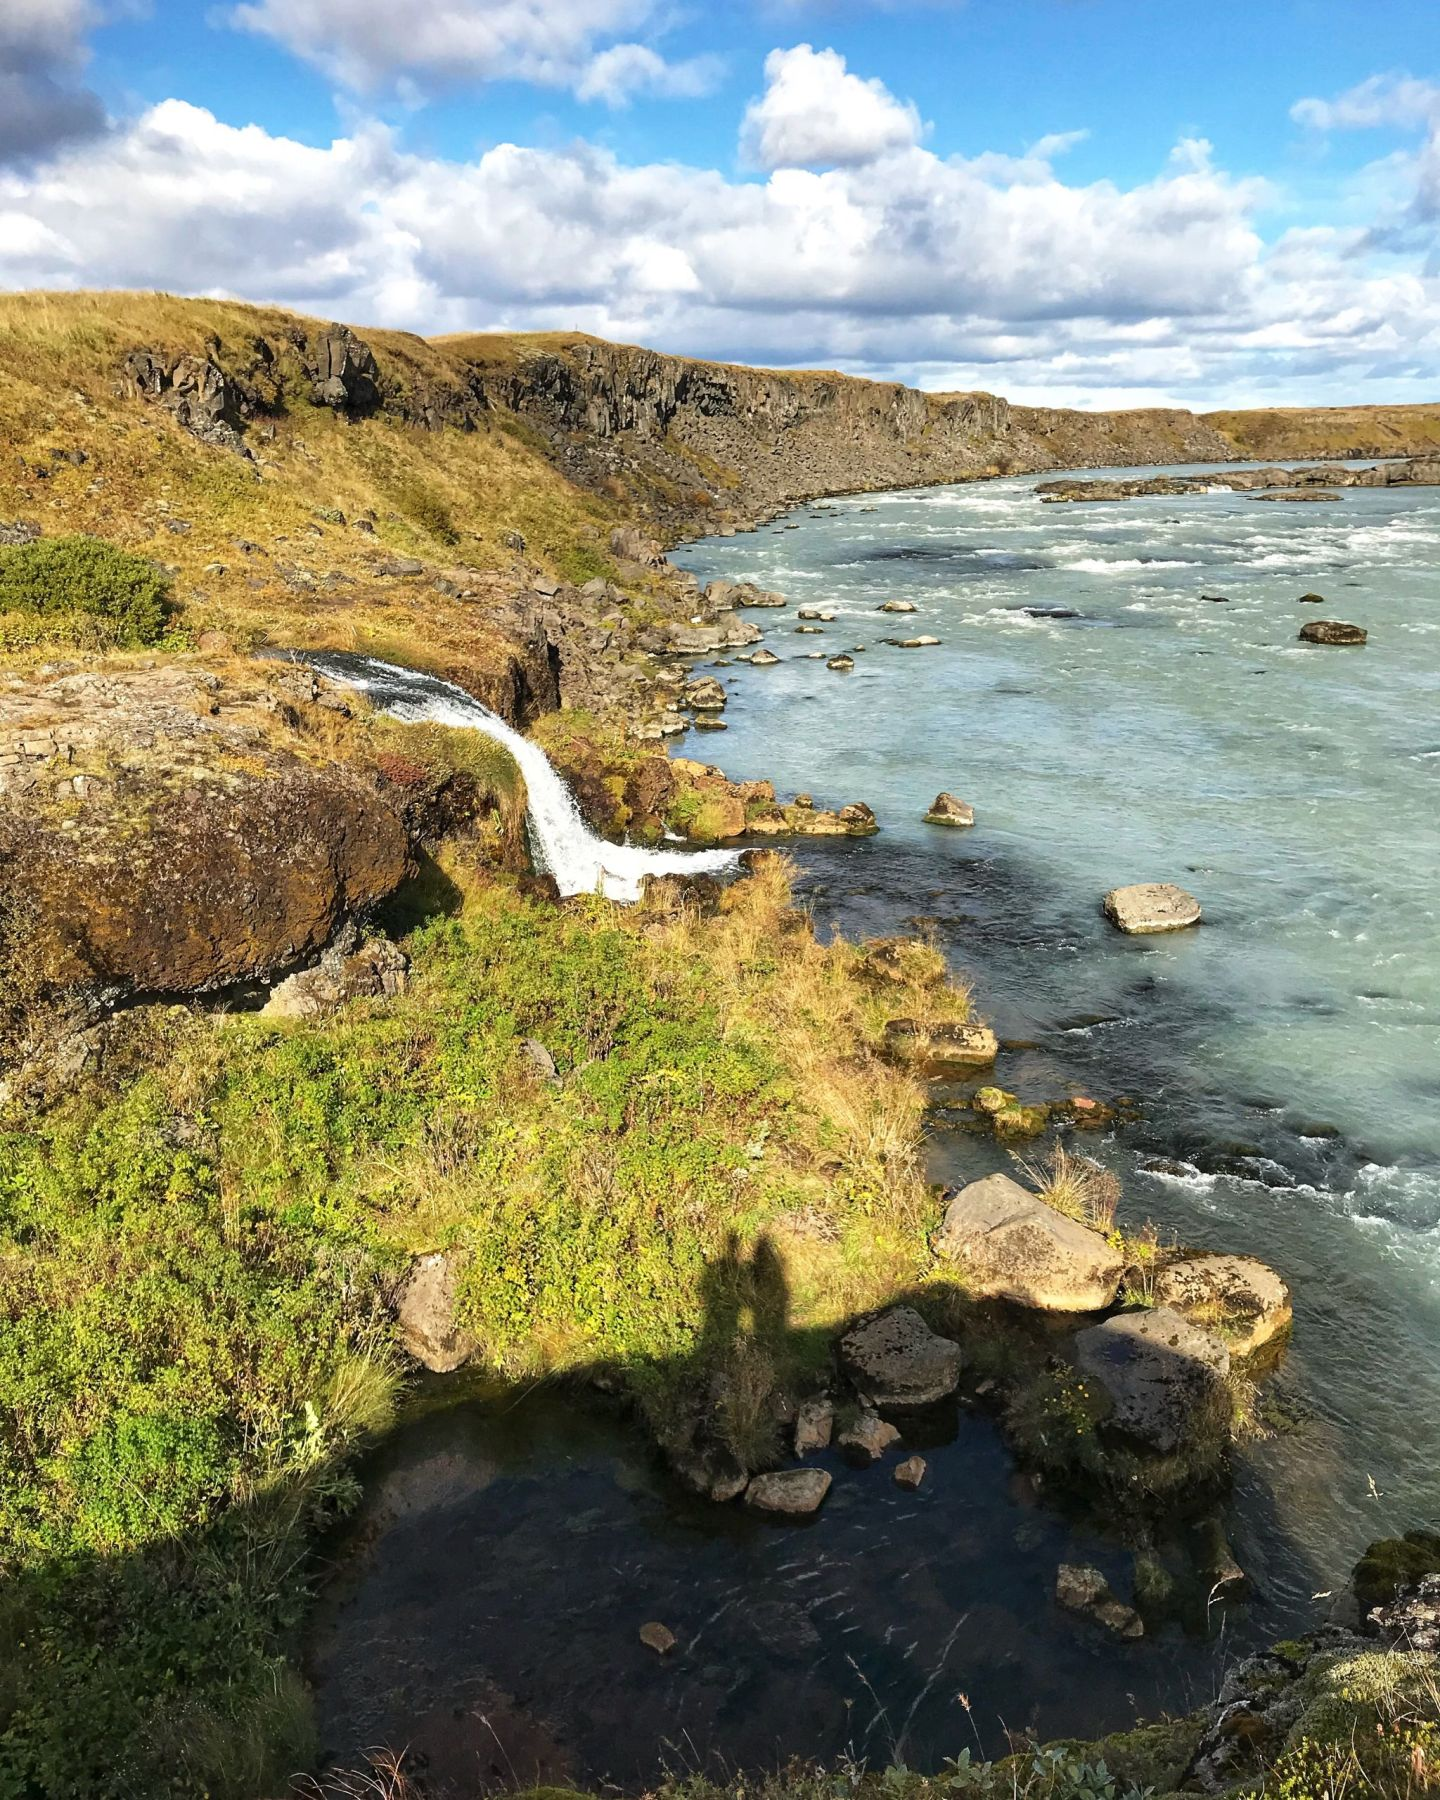 Iceland Travel Tips: 11 Things to Know Before Visiting Iceland for the First Time